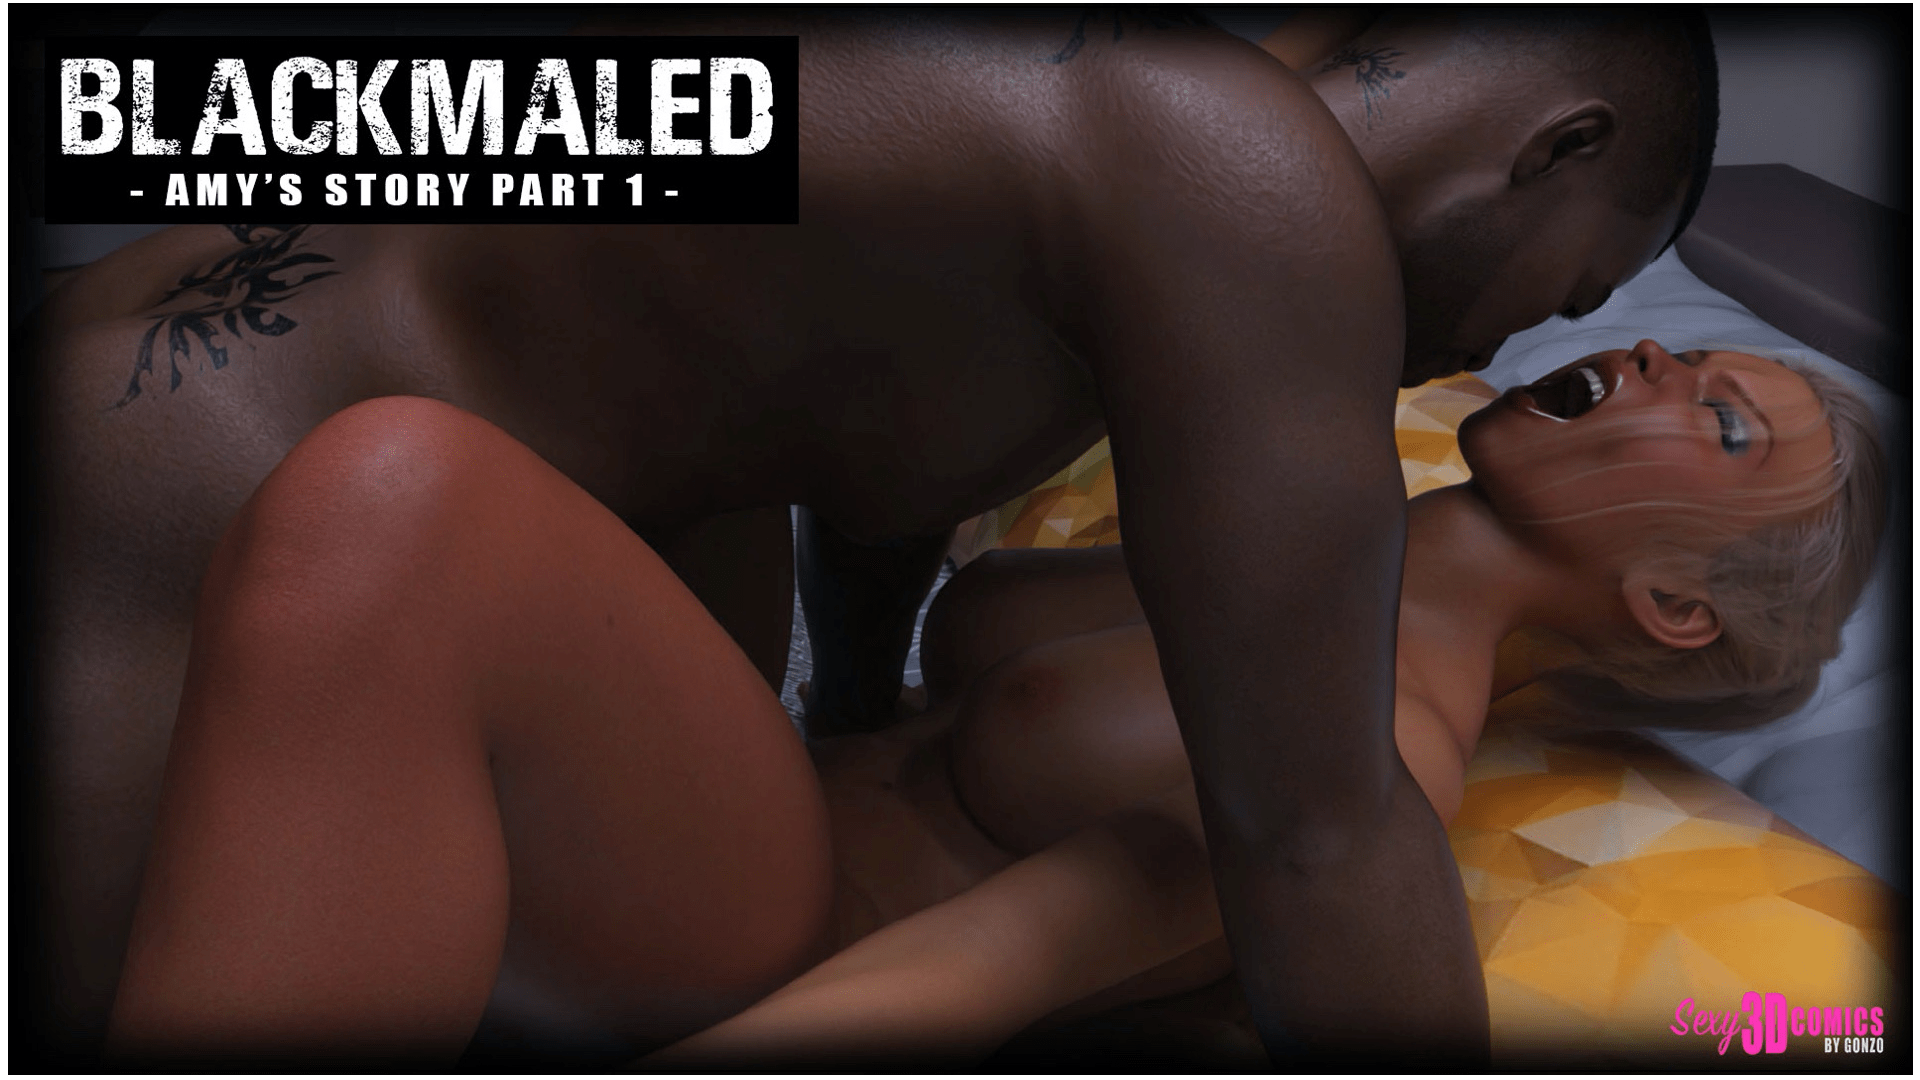 Blackmaled 5 Part 1